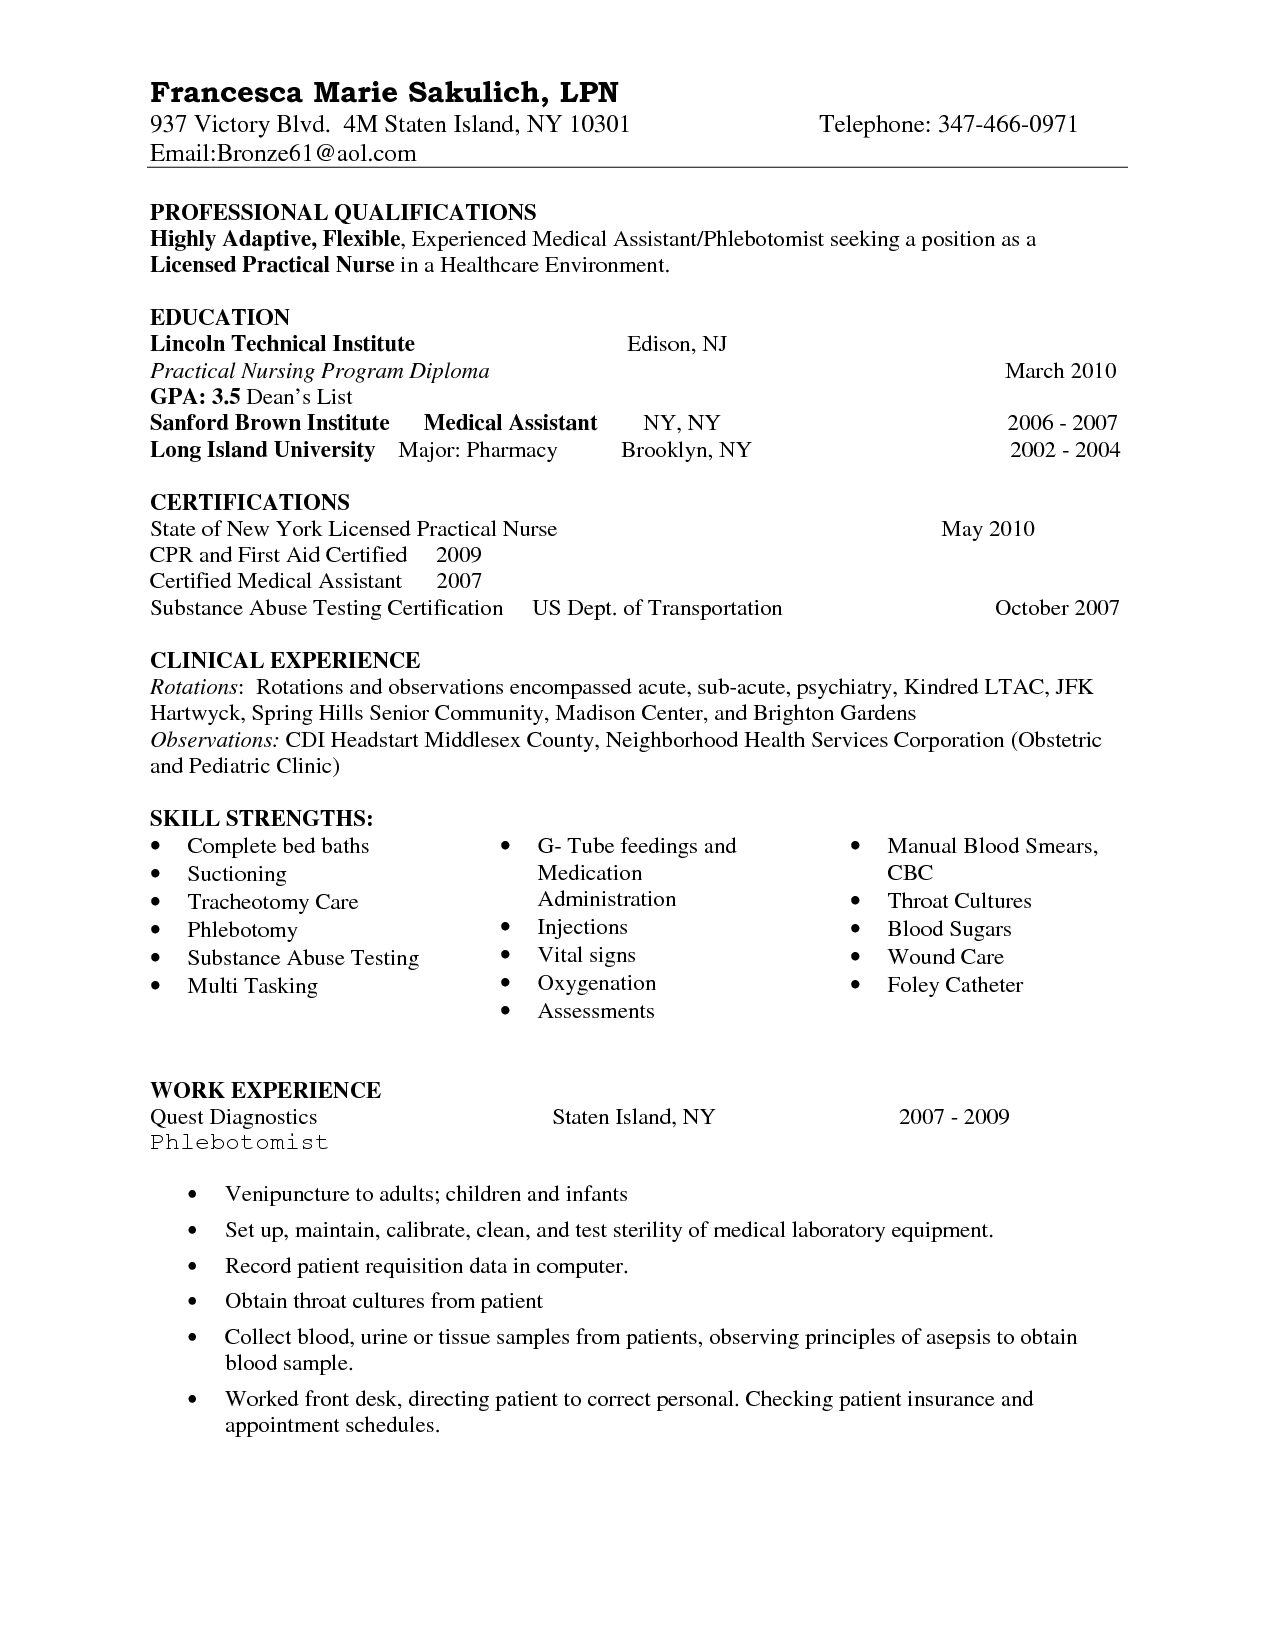 New Graduate Lpn Resume Sample Entry Level Lpn Resume Sample Nursing Pinterest